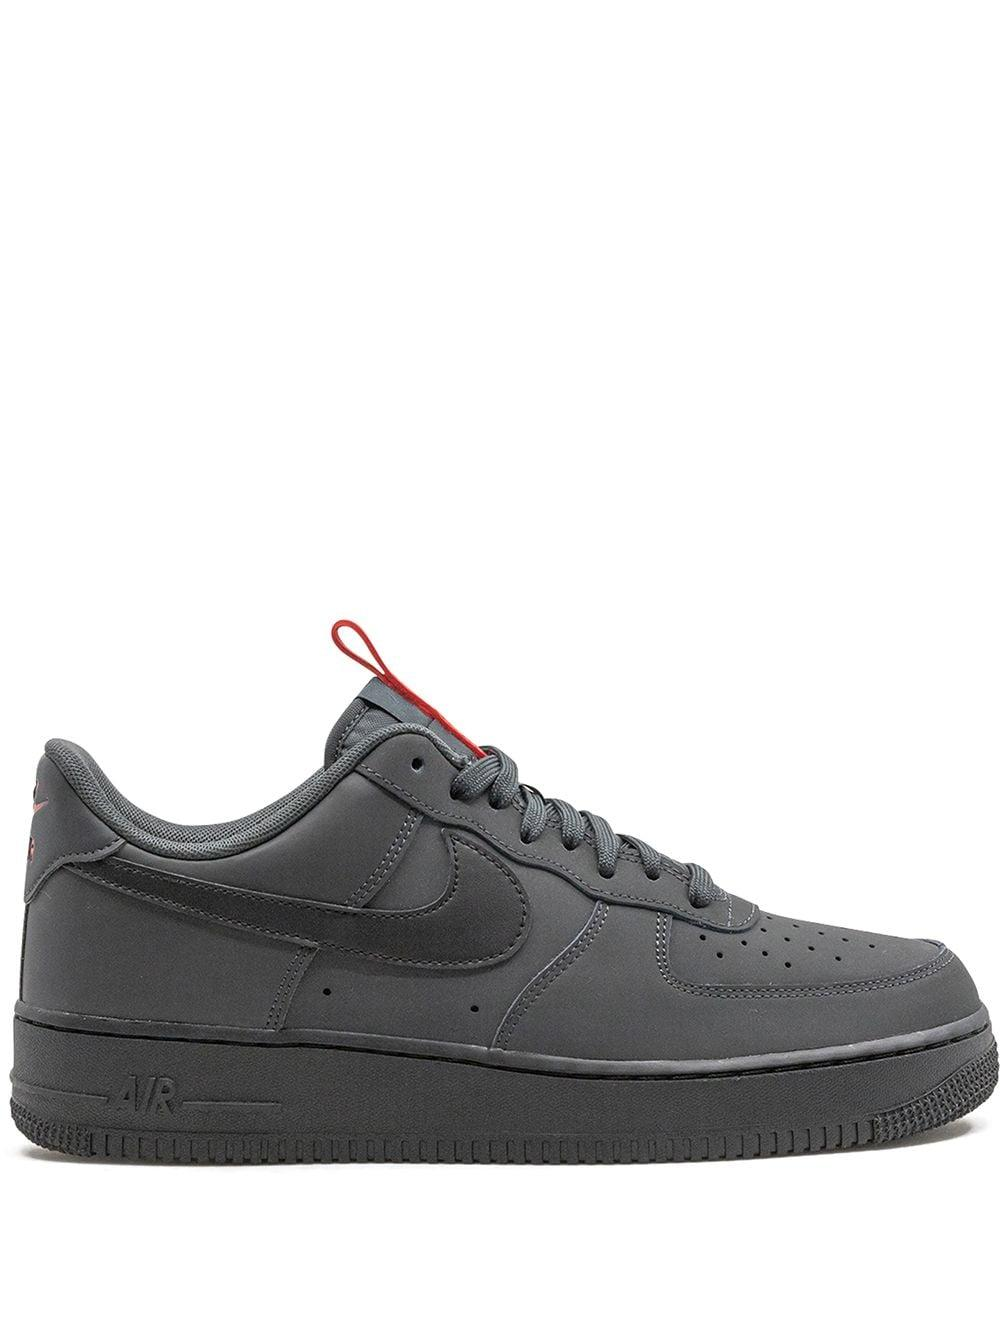 Nike Air Force 1 '07 Sneakers in Anthracite/Black (Black) for Men ...